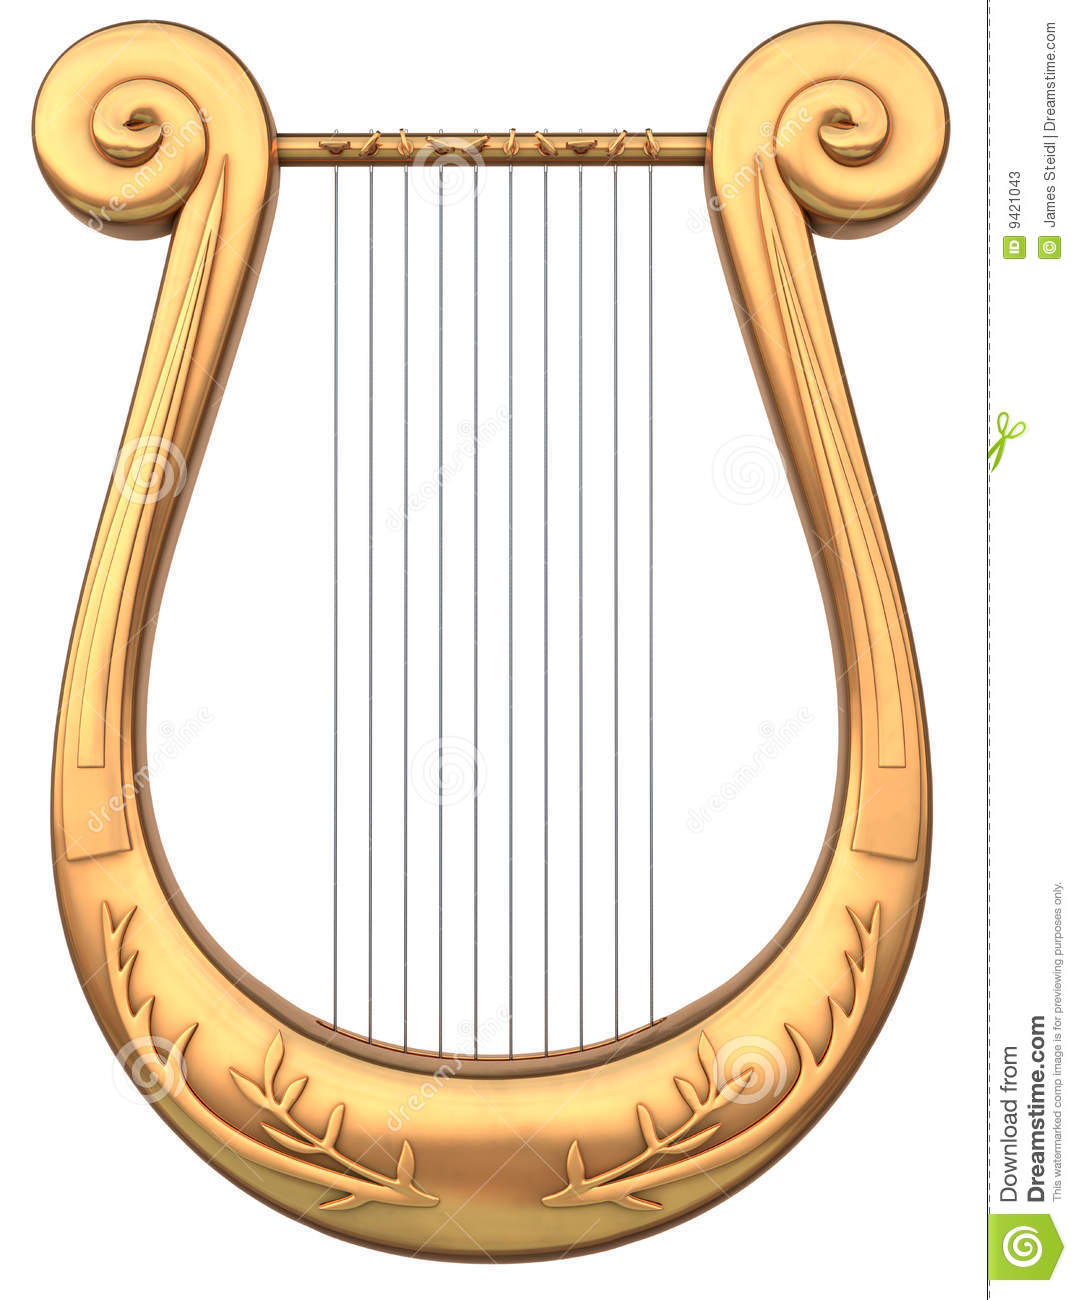 What is a lyre